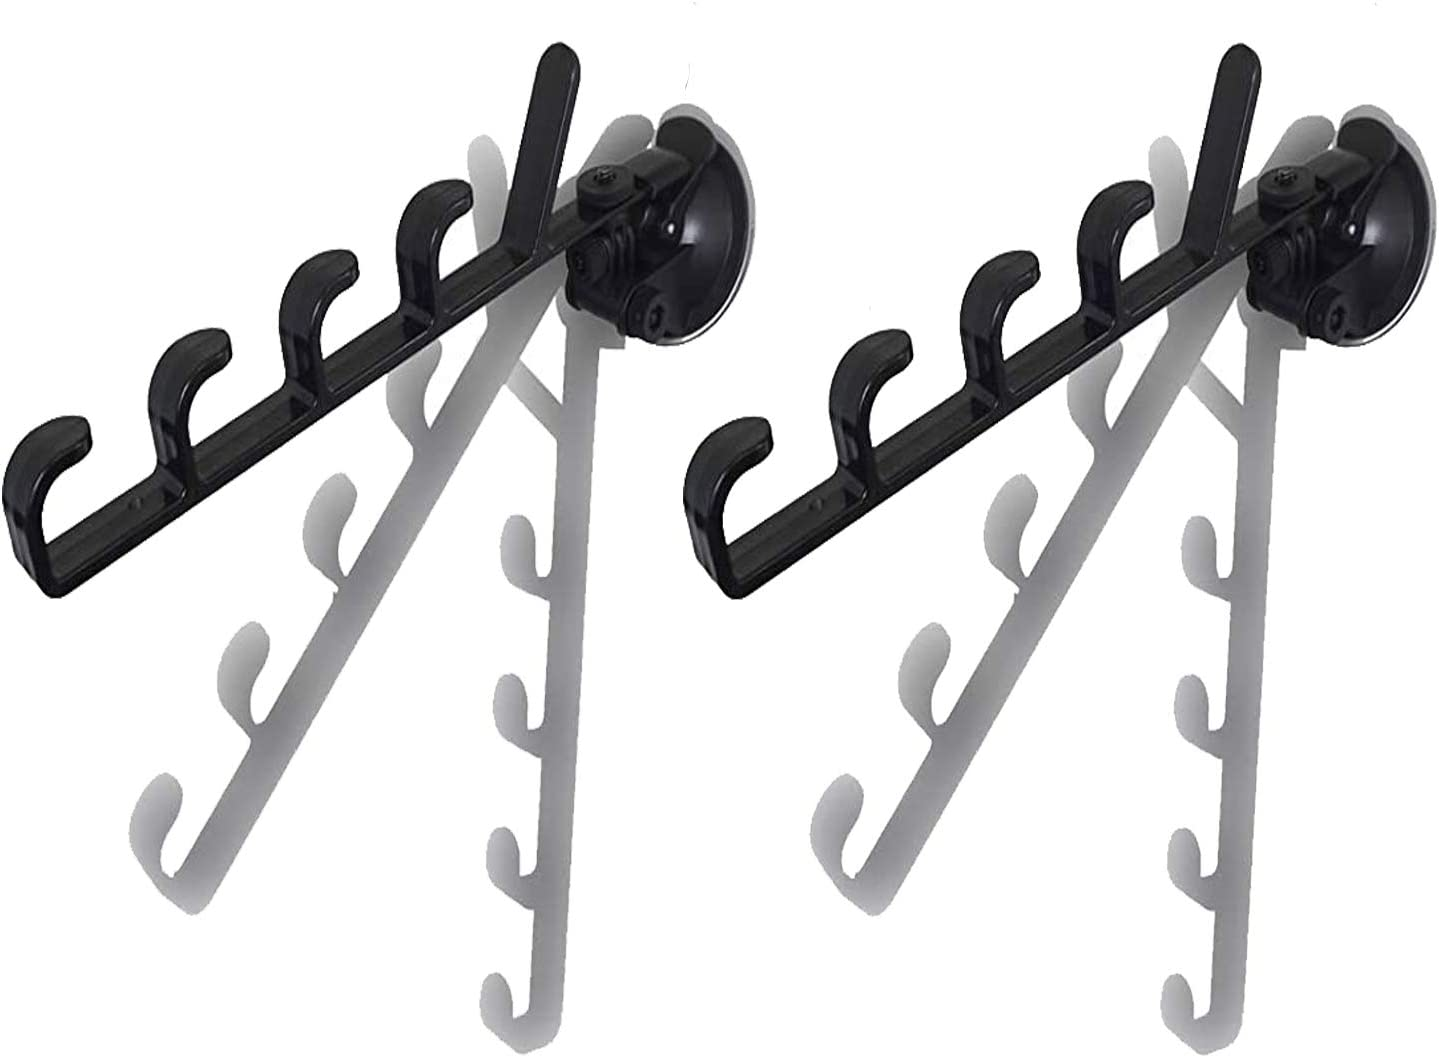 Pmsanzay 1 Pair New mail order Suction Cup Rack Fishing Sales results No. 1 Rod Pole